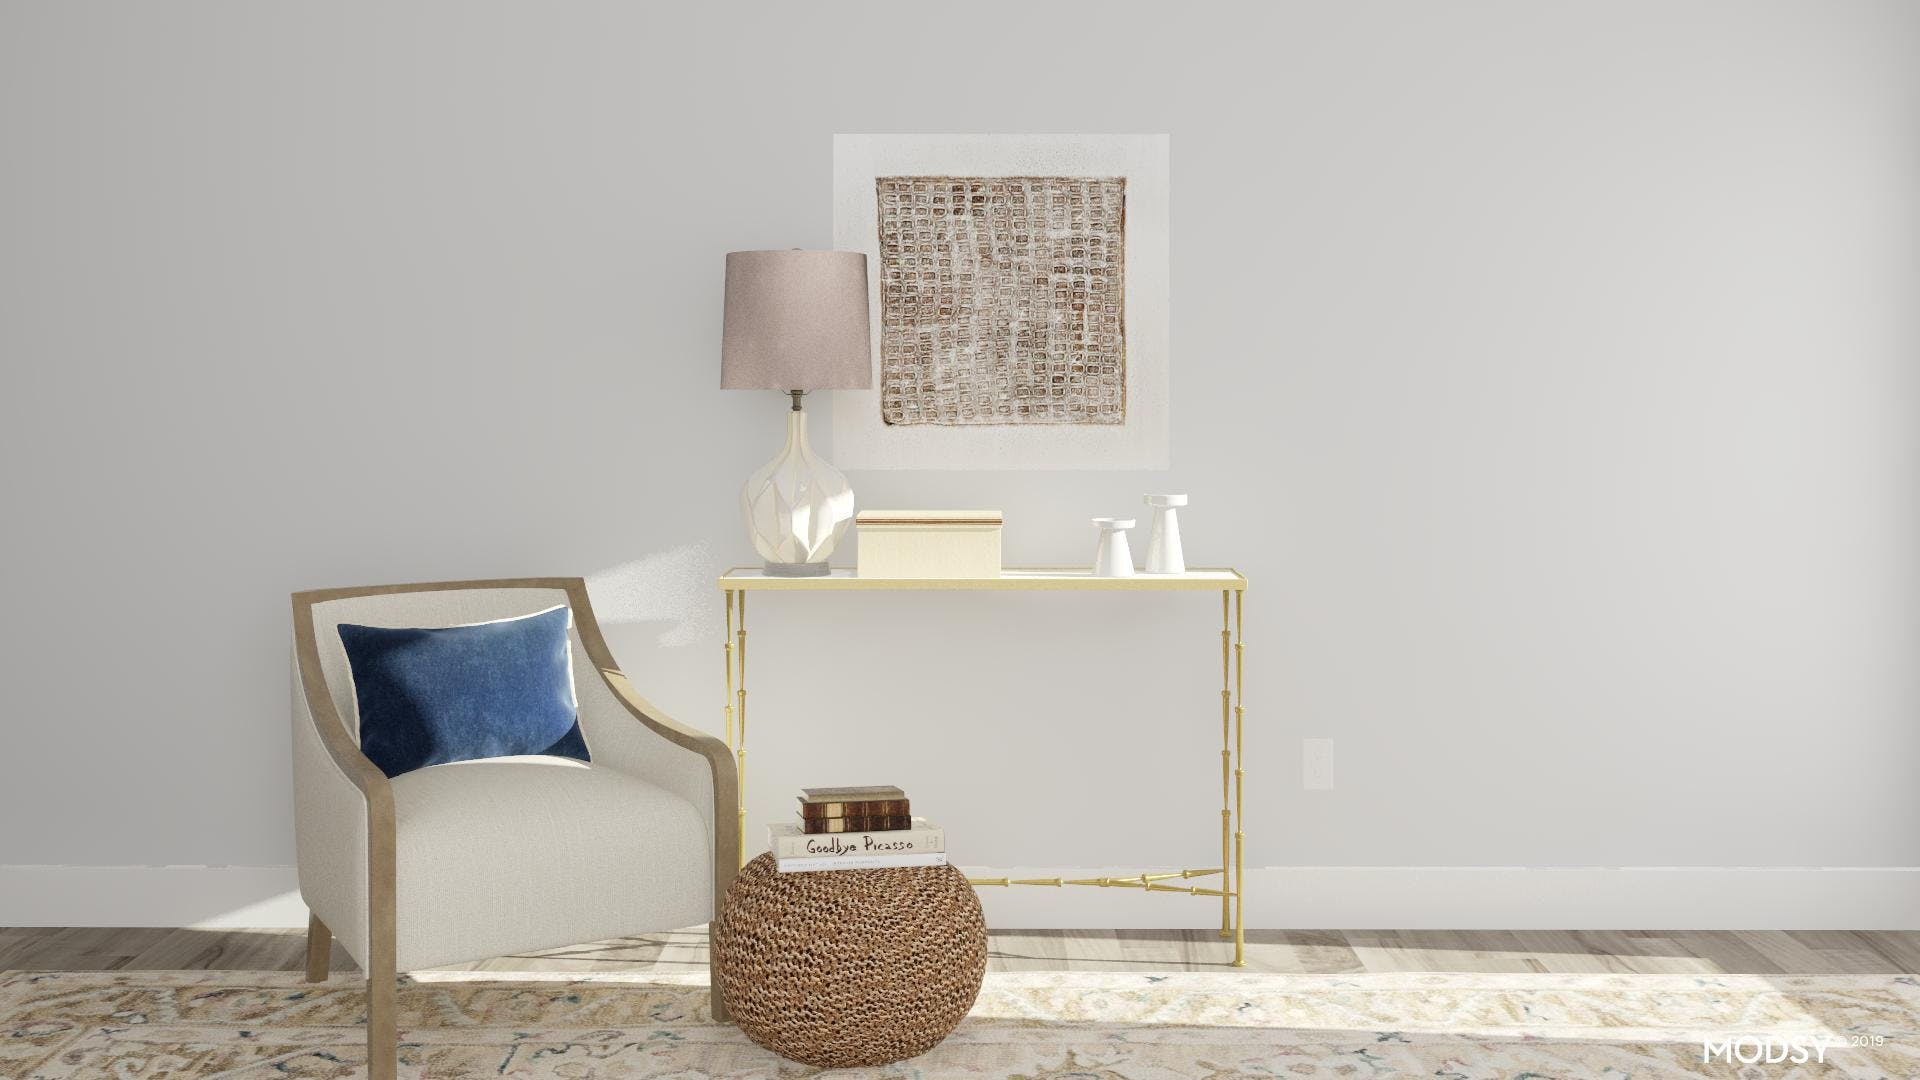 Console Table In Reading Nook